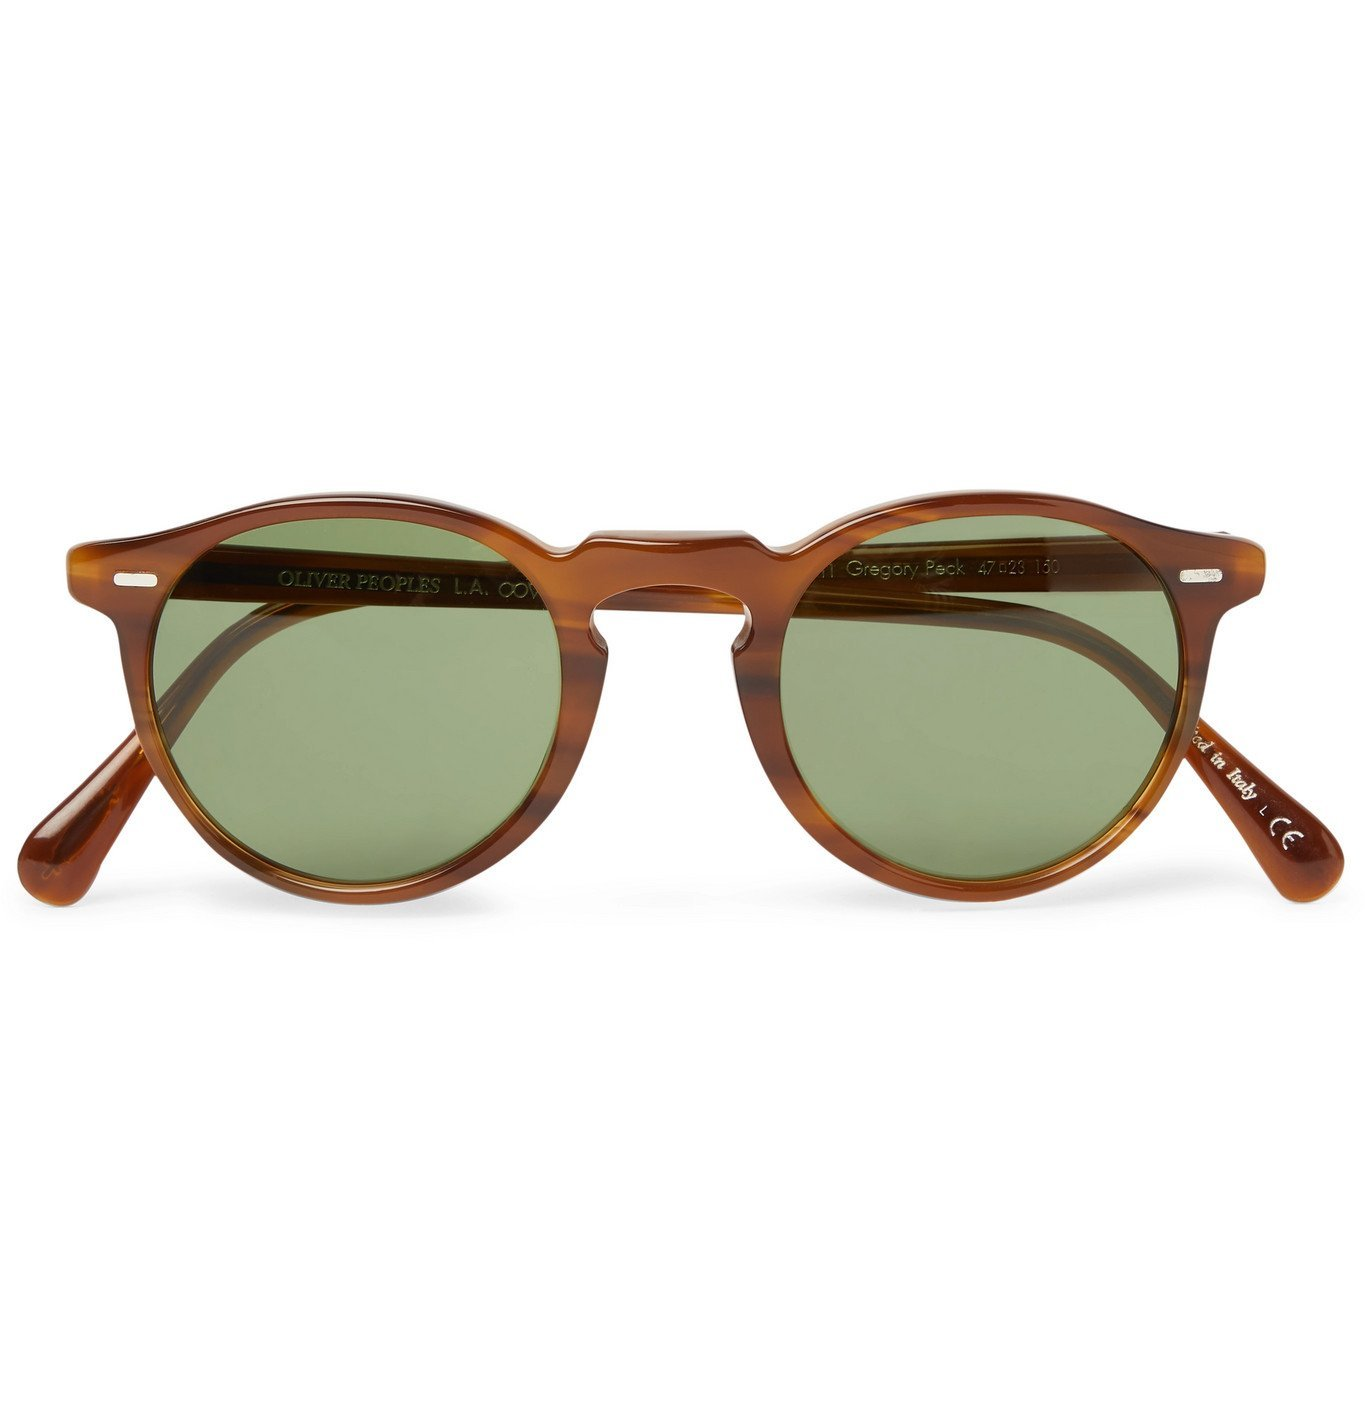 Oliver Peoples - Gregory Peck Round-Frame Tortoiseshell Acetate Sunglasses - Brown